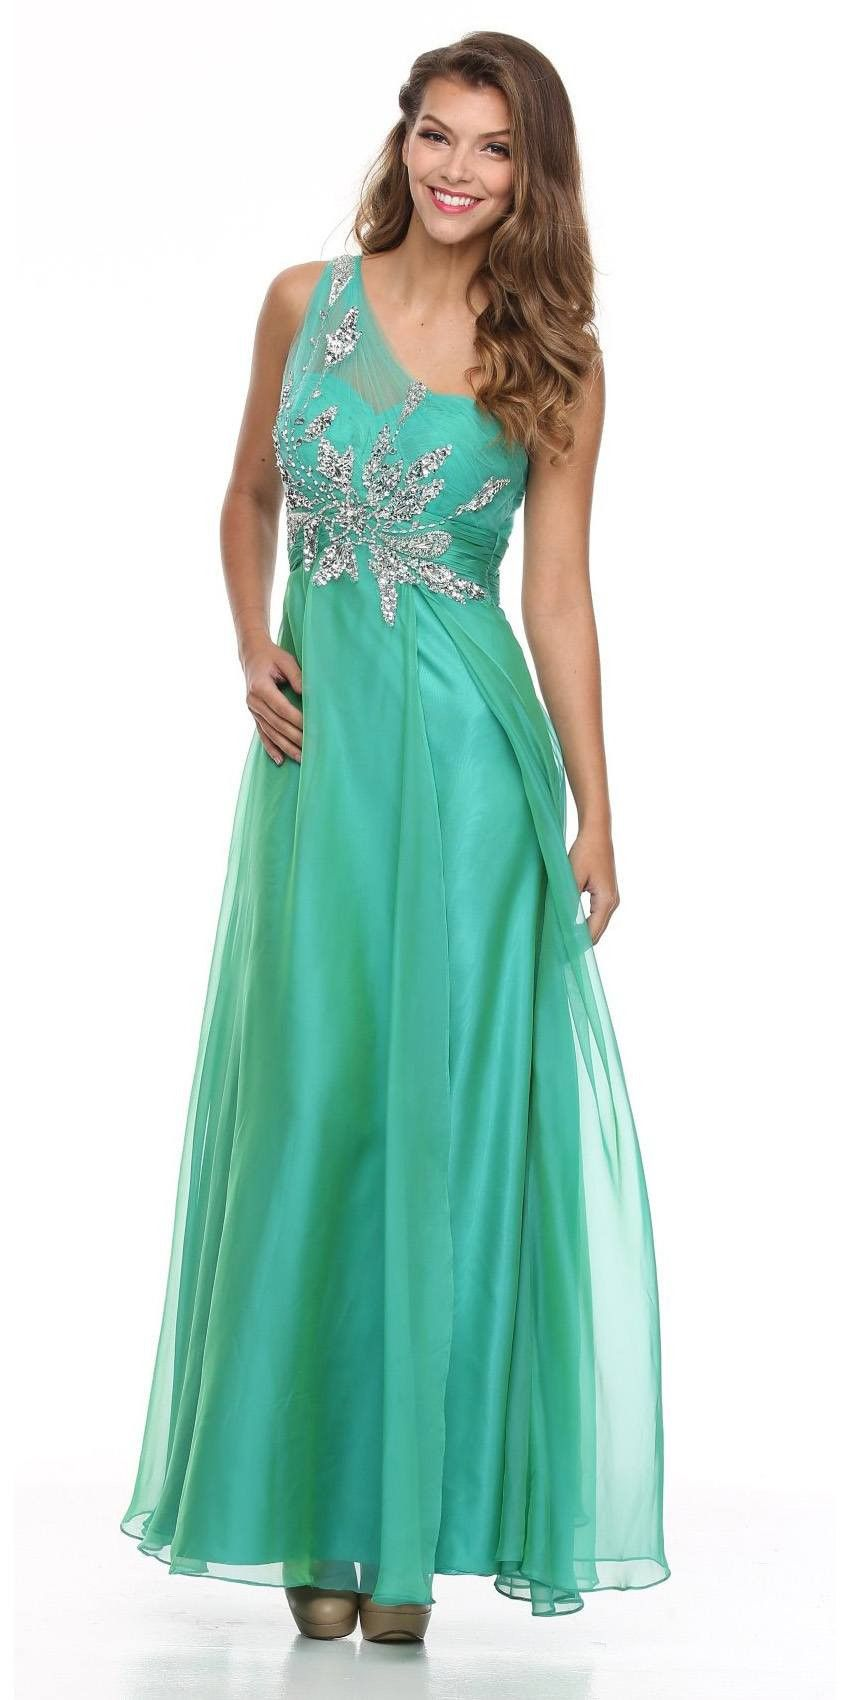 Sheer One Shoulder Studded Long A Line Jade Formal Gown | Formal ...